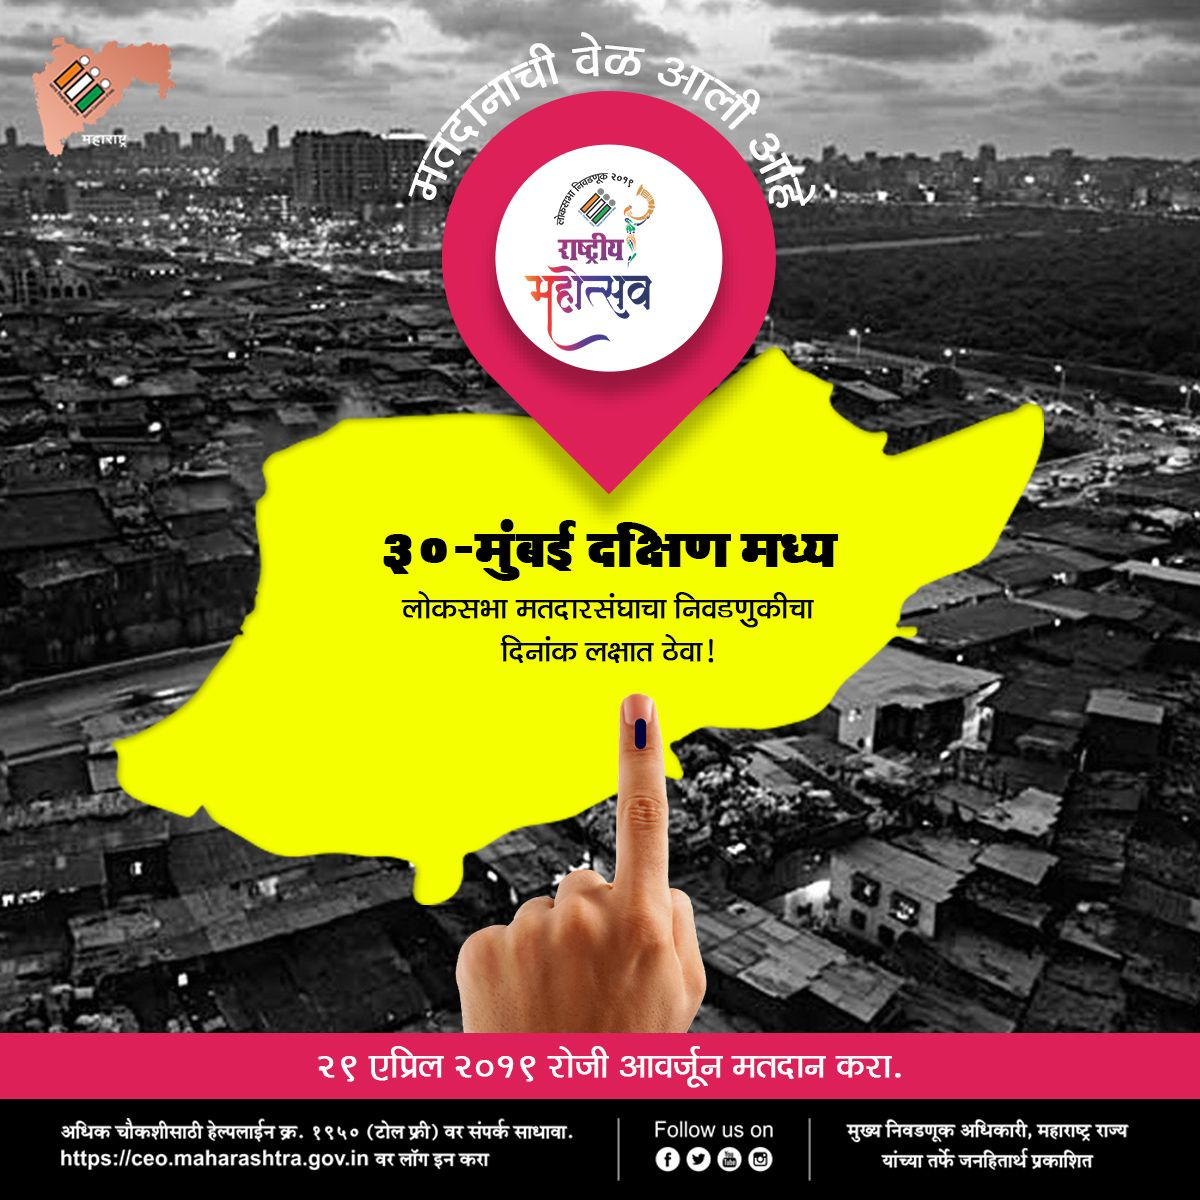 Marathi-Election-30-Mumbai-South-Central.jpg